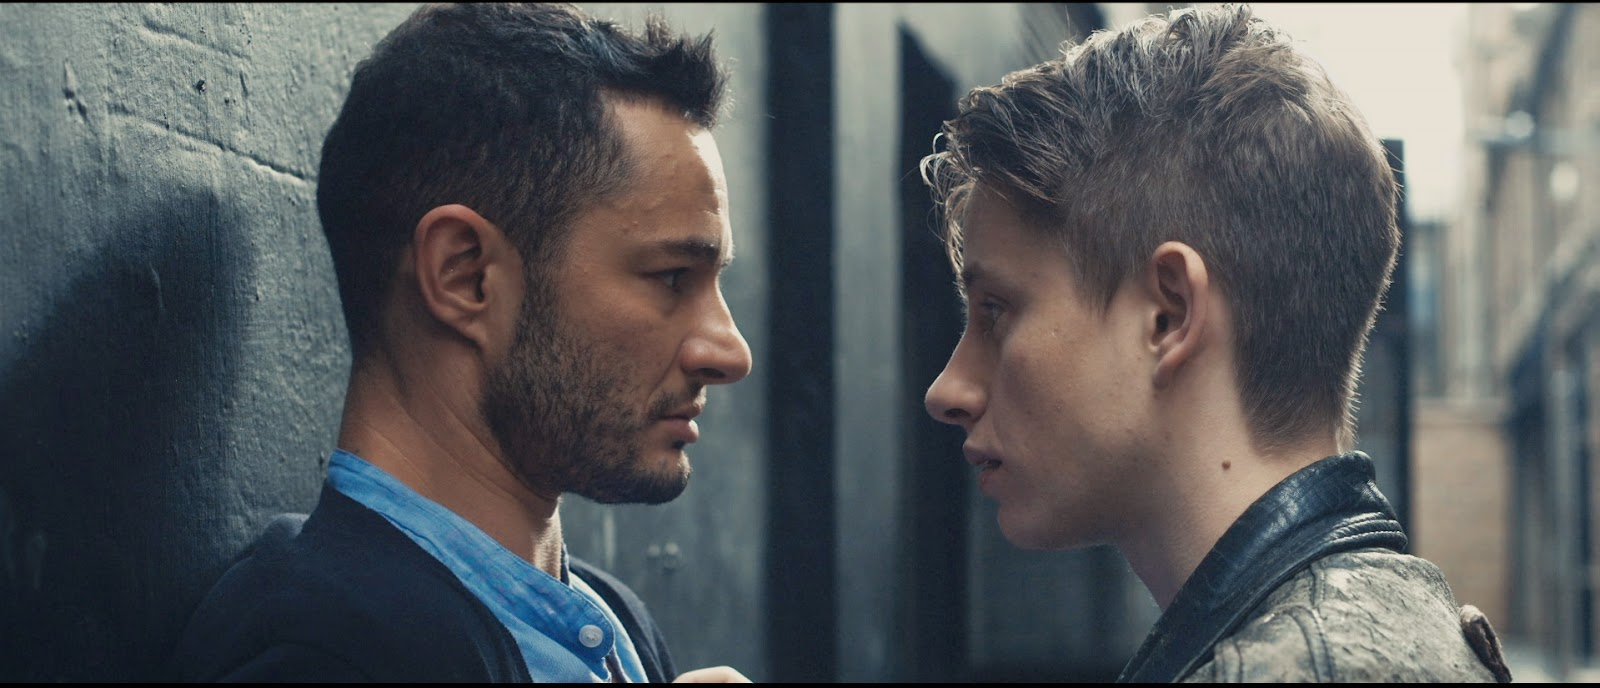 Headliners Include The Critically Acclaimed Stand A Russian Feature Film Directed By Jonathan Taieb While British Filmmakers Jake Graf And Richard